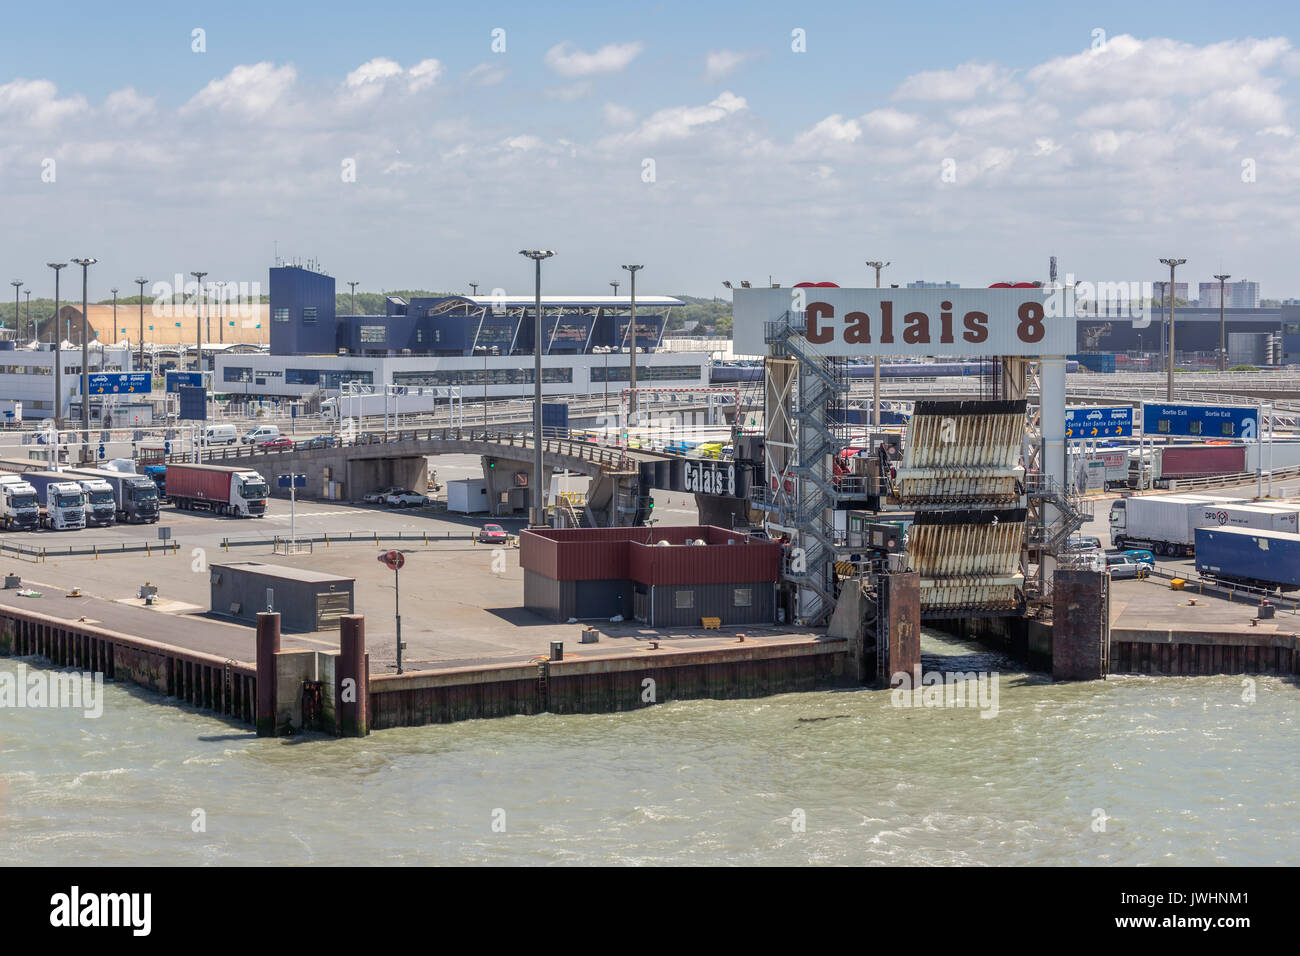 HARBOR CALAIS, FRANCE - JUNE 07, 2017: Port of Calais with trucks waiting for embarking at the ferry to Engeland - Stock Image